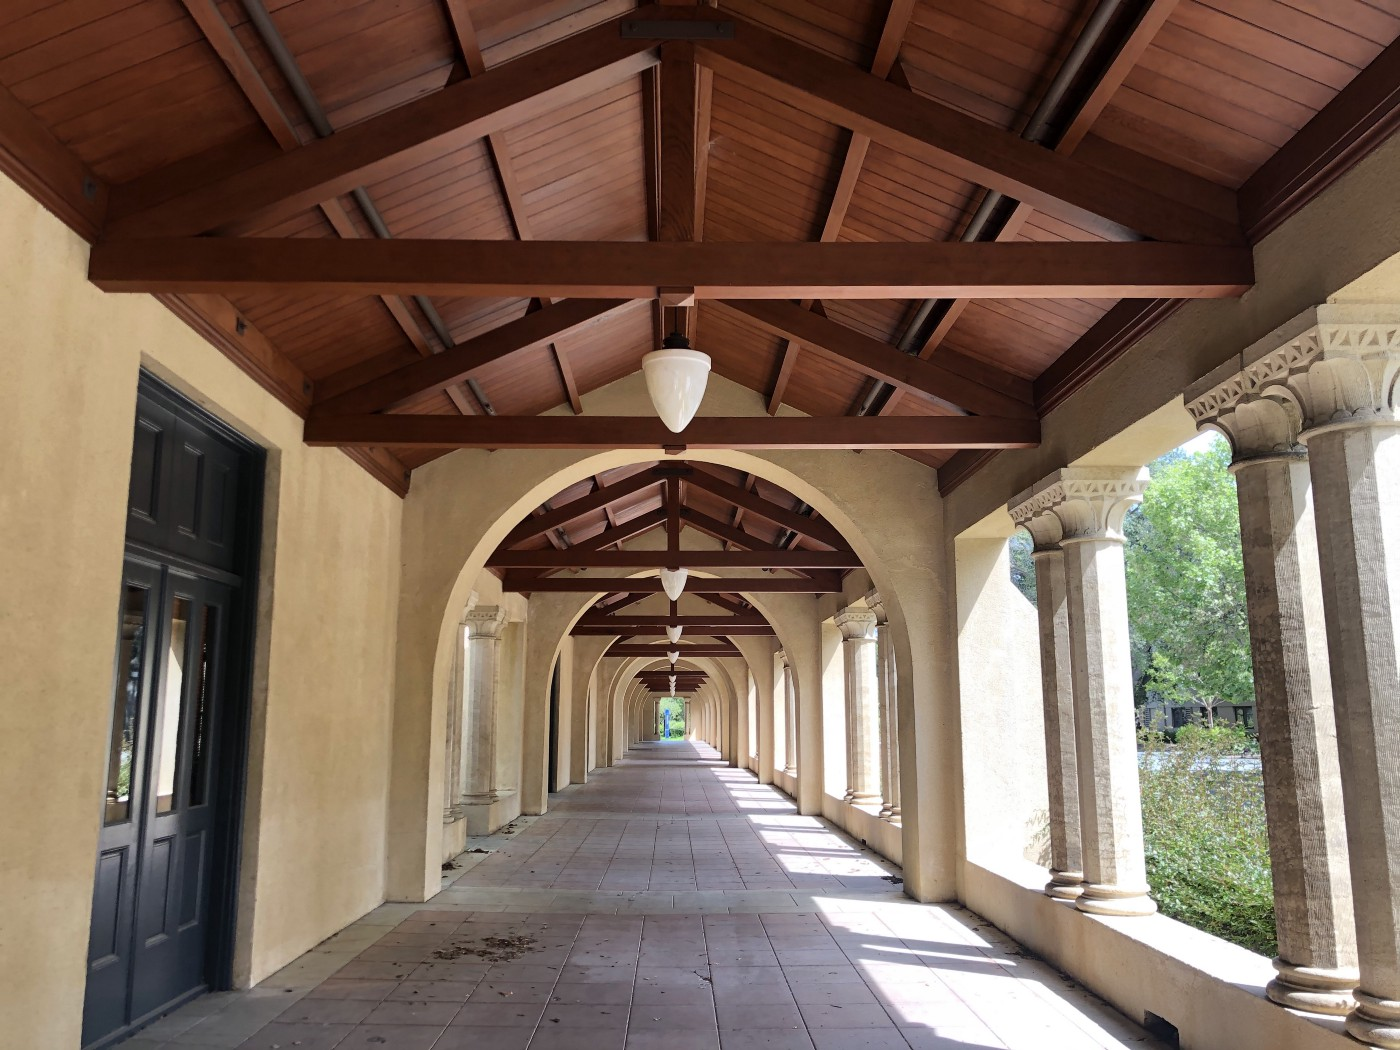 photo down the length of a covered arcade with repeating architectural features